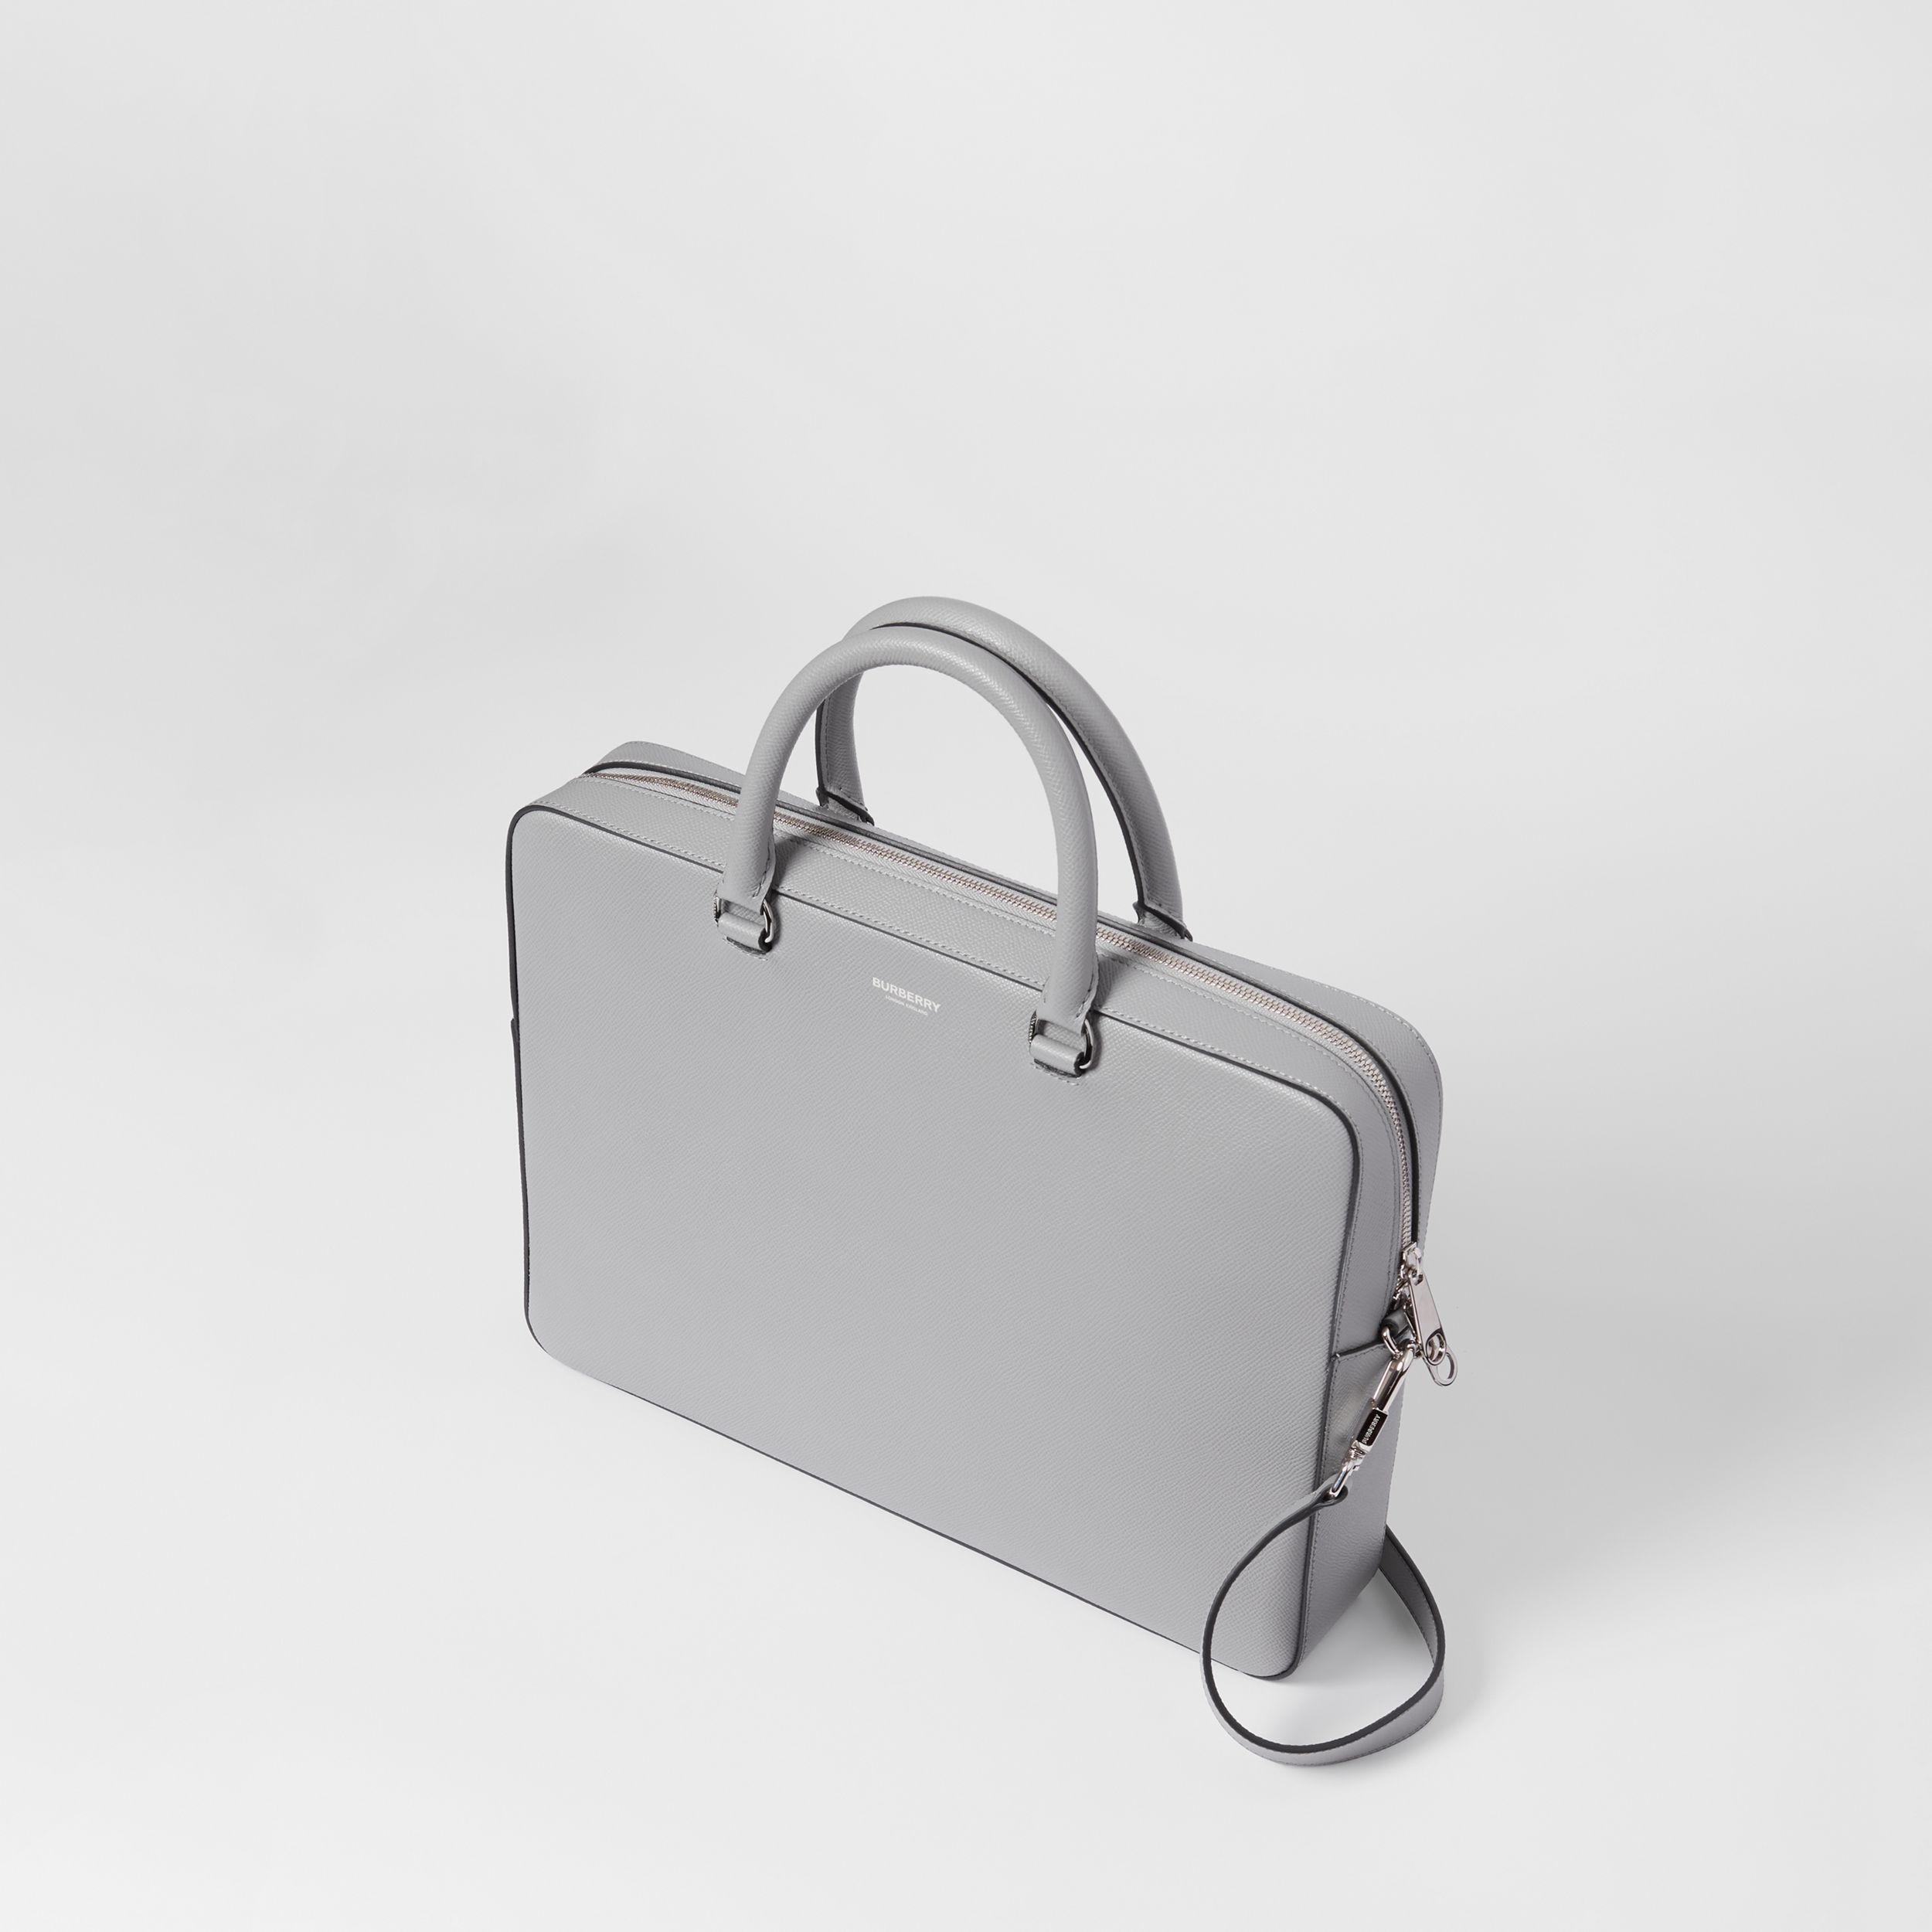 Grainy Leather Briefcase in Cloud Grey - Men | Burberry Hong Kong S.A.R. - 4